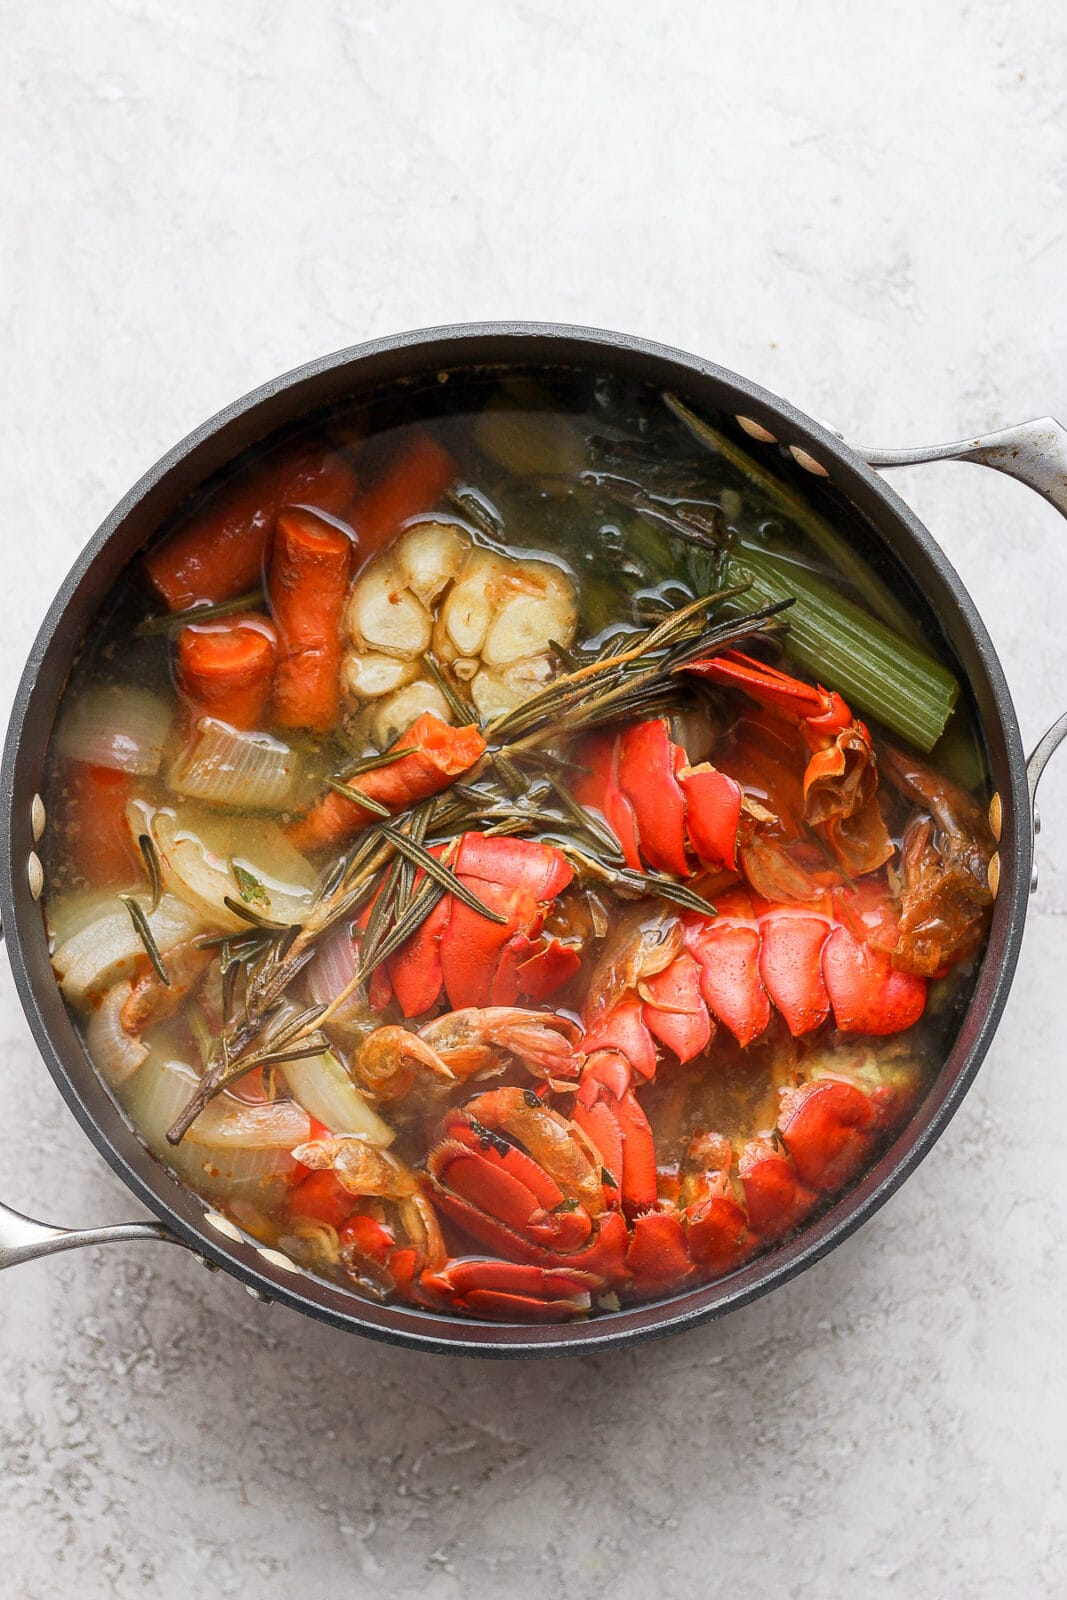 Dutch oven with seafood stock after simmering.